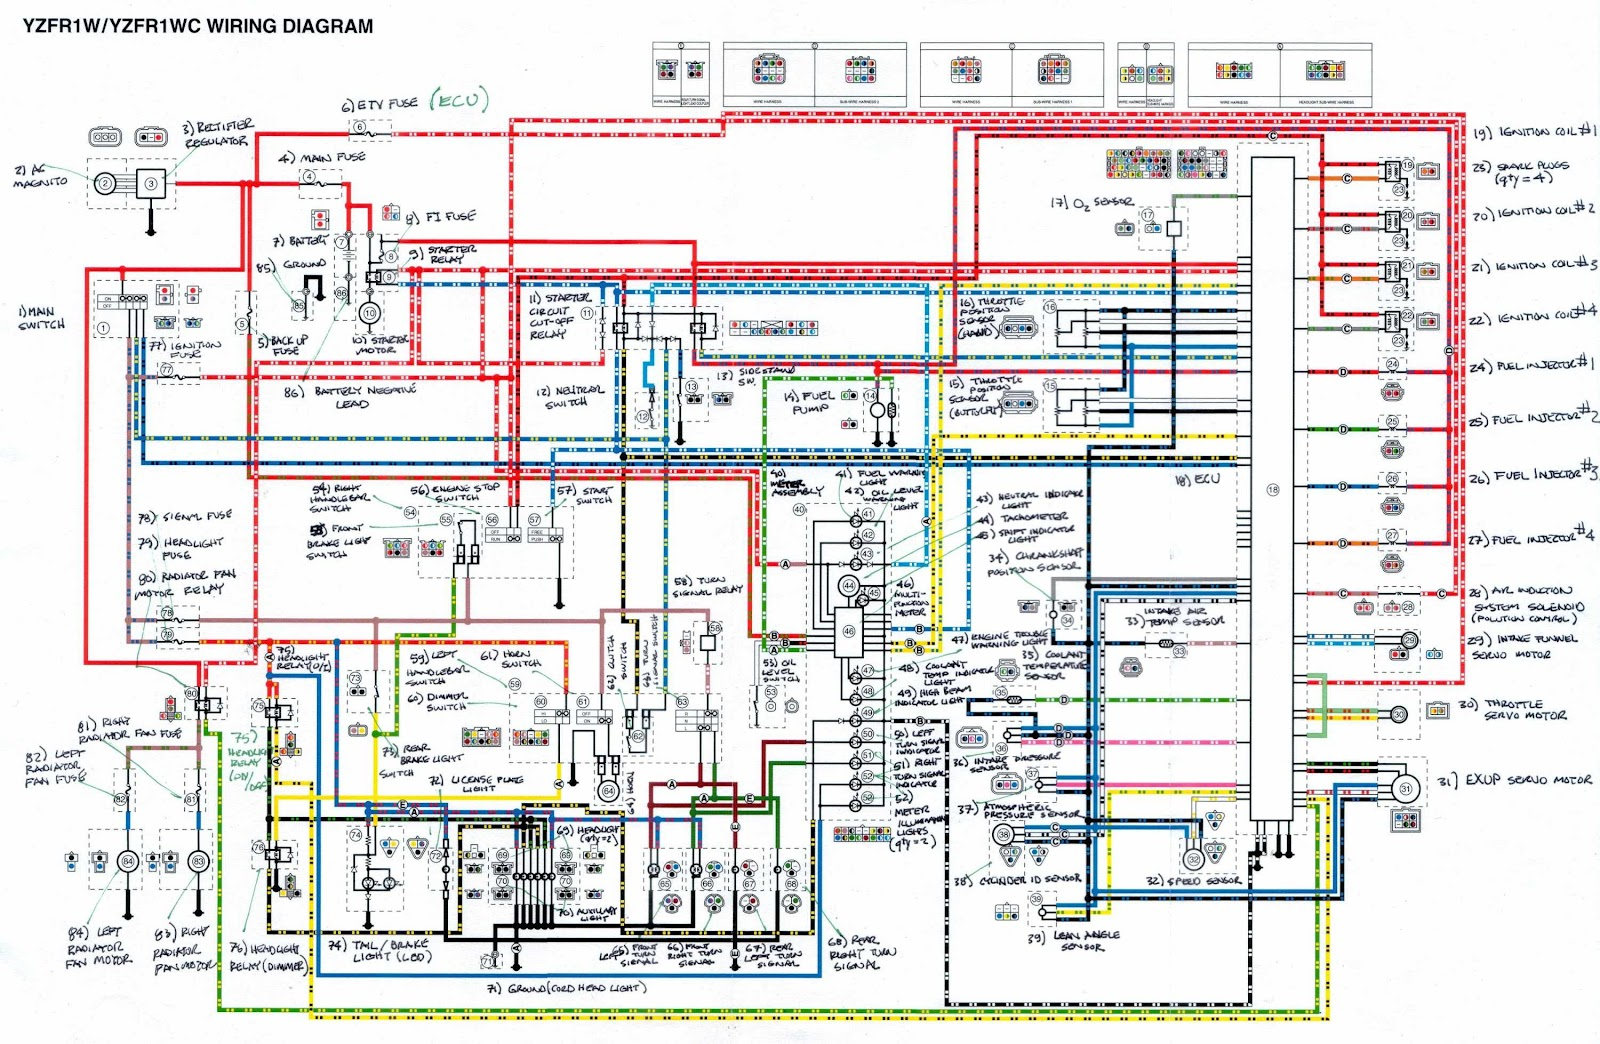 Yamaha+YZF R1+Motorcycle+Wiring+Diagram?resize=665%2C434 2001 yamaha r6 wiring diagram 2001 yamaha blaster wiring diagram  at gsmx.co